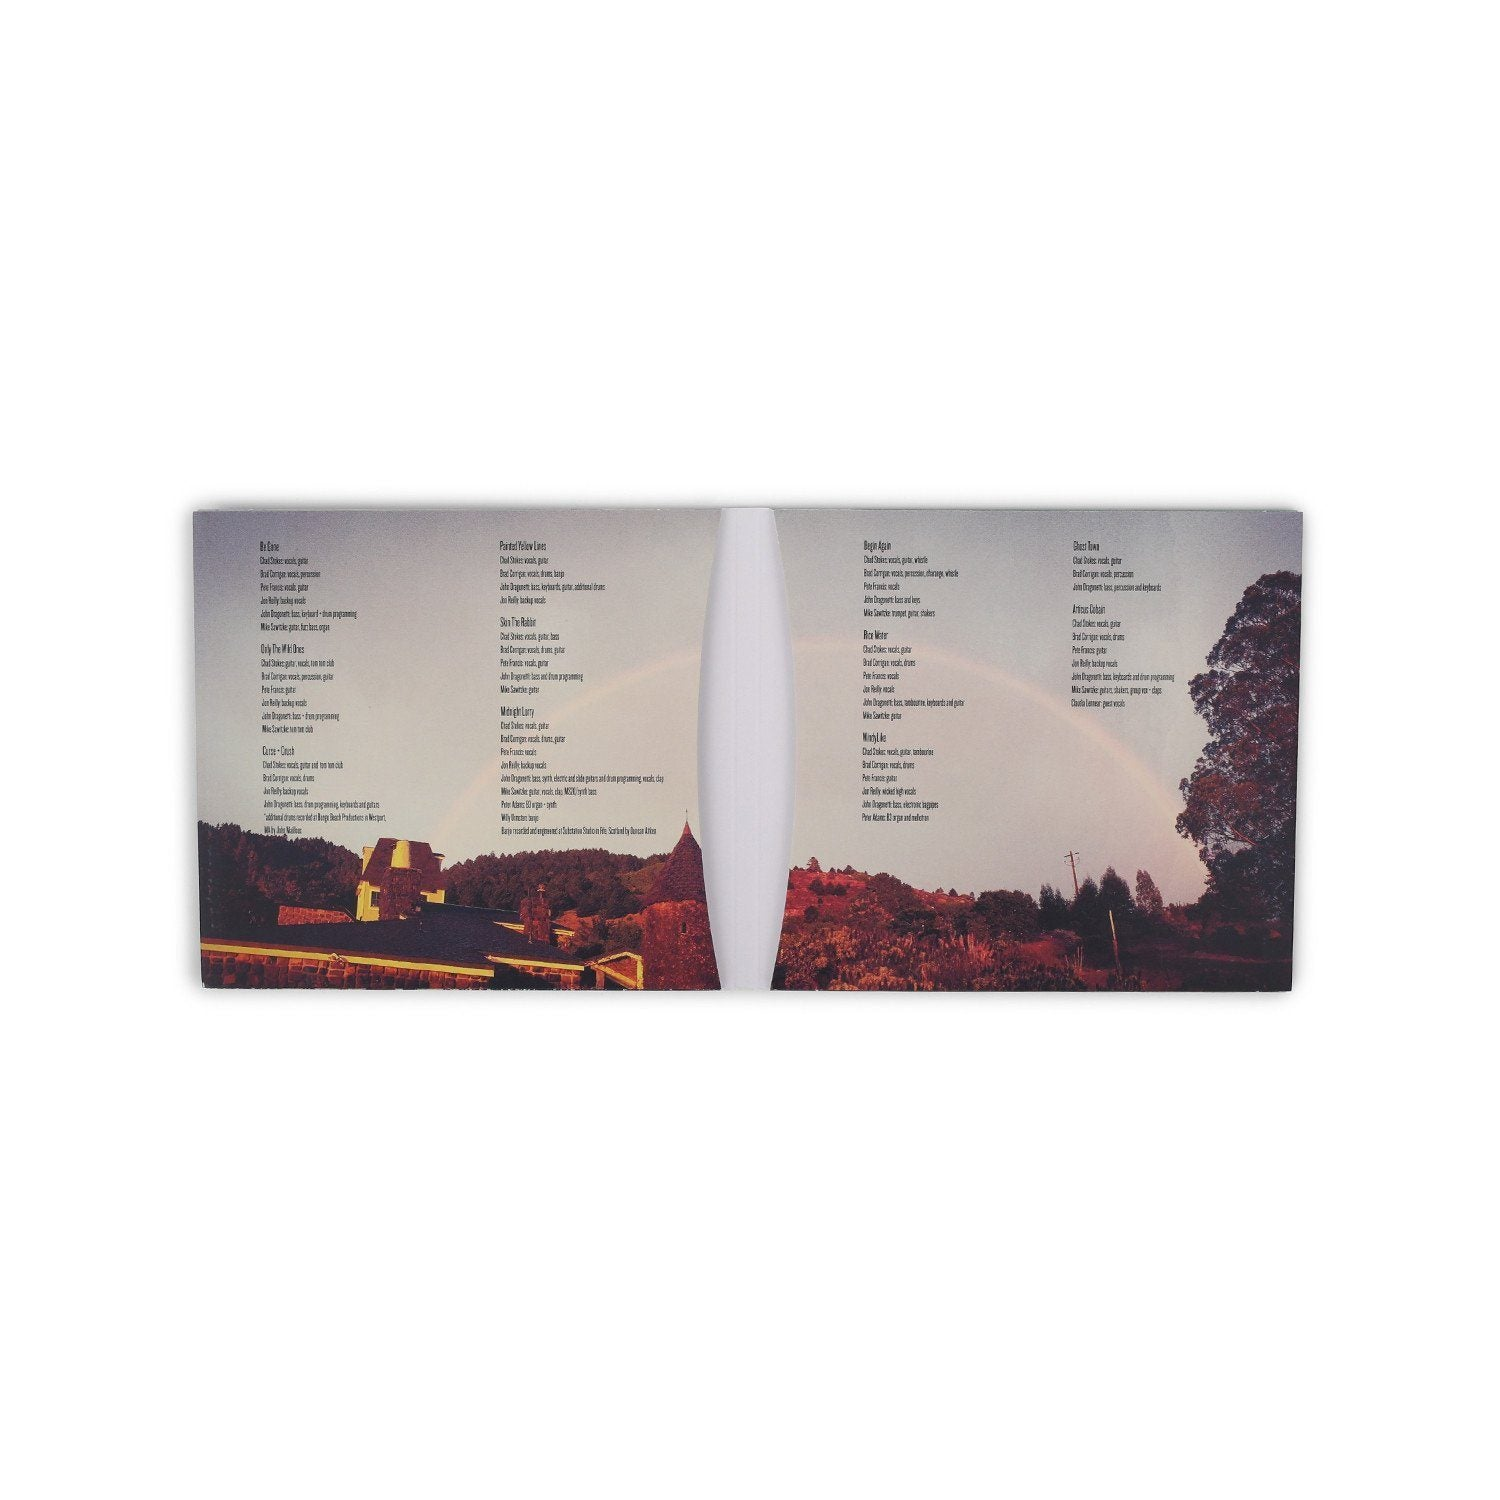 'America, Location 12' CD + MP3 Download